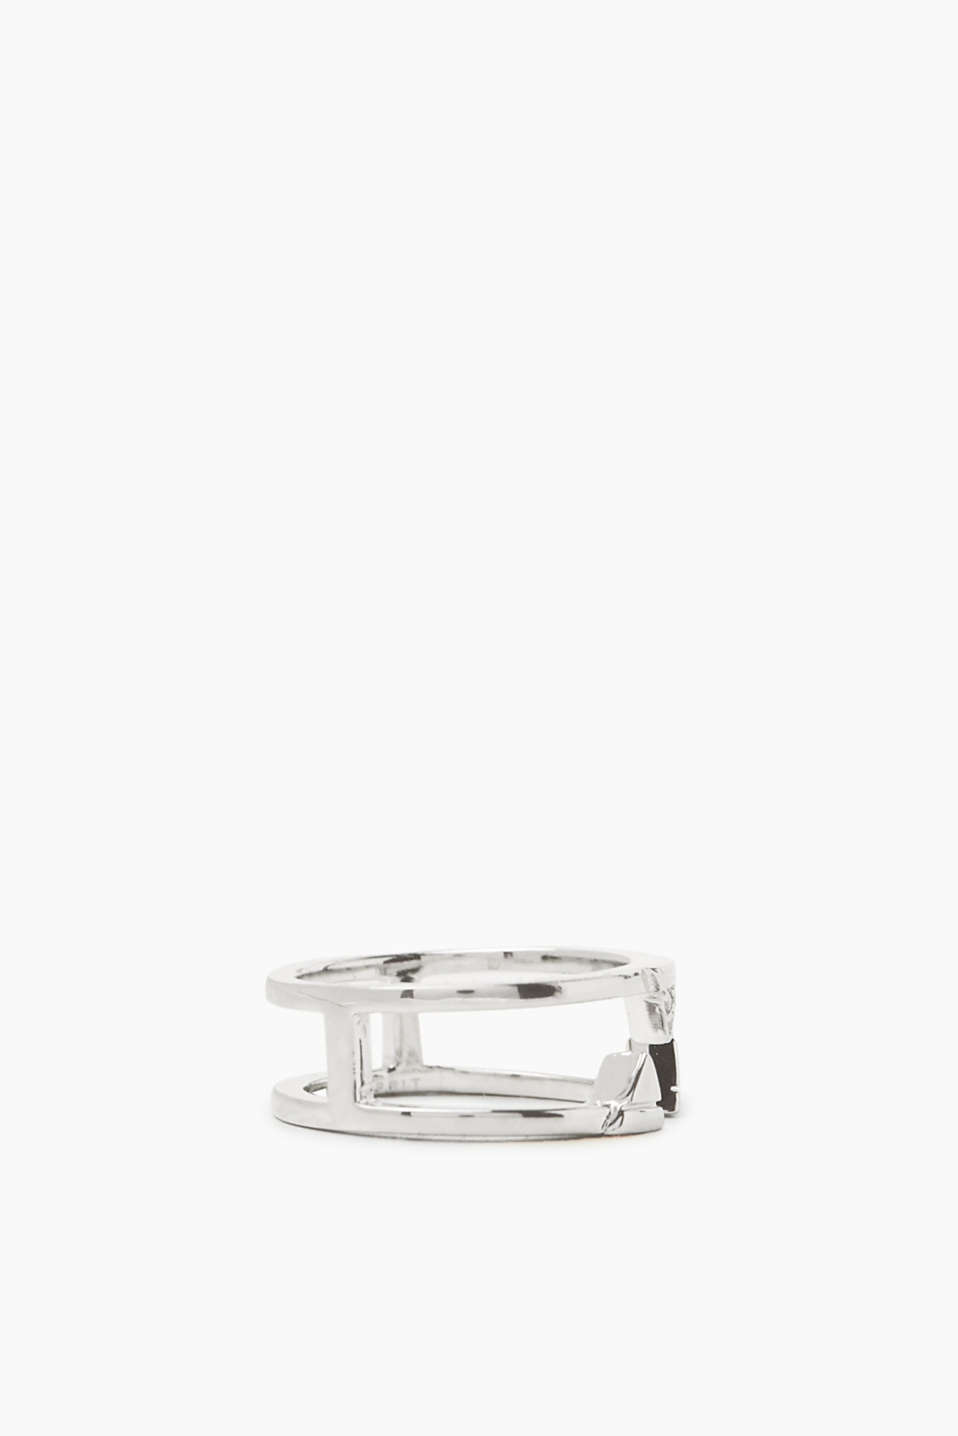 Ring with graphic details, sterling silver